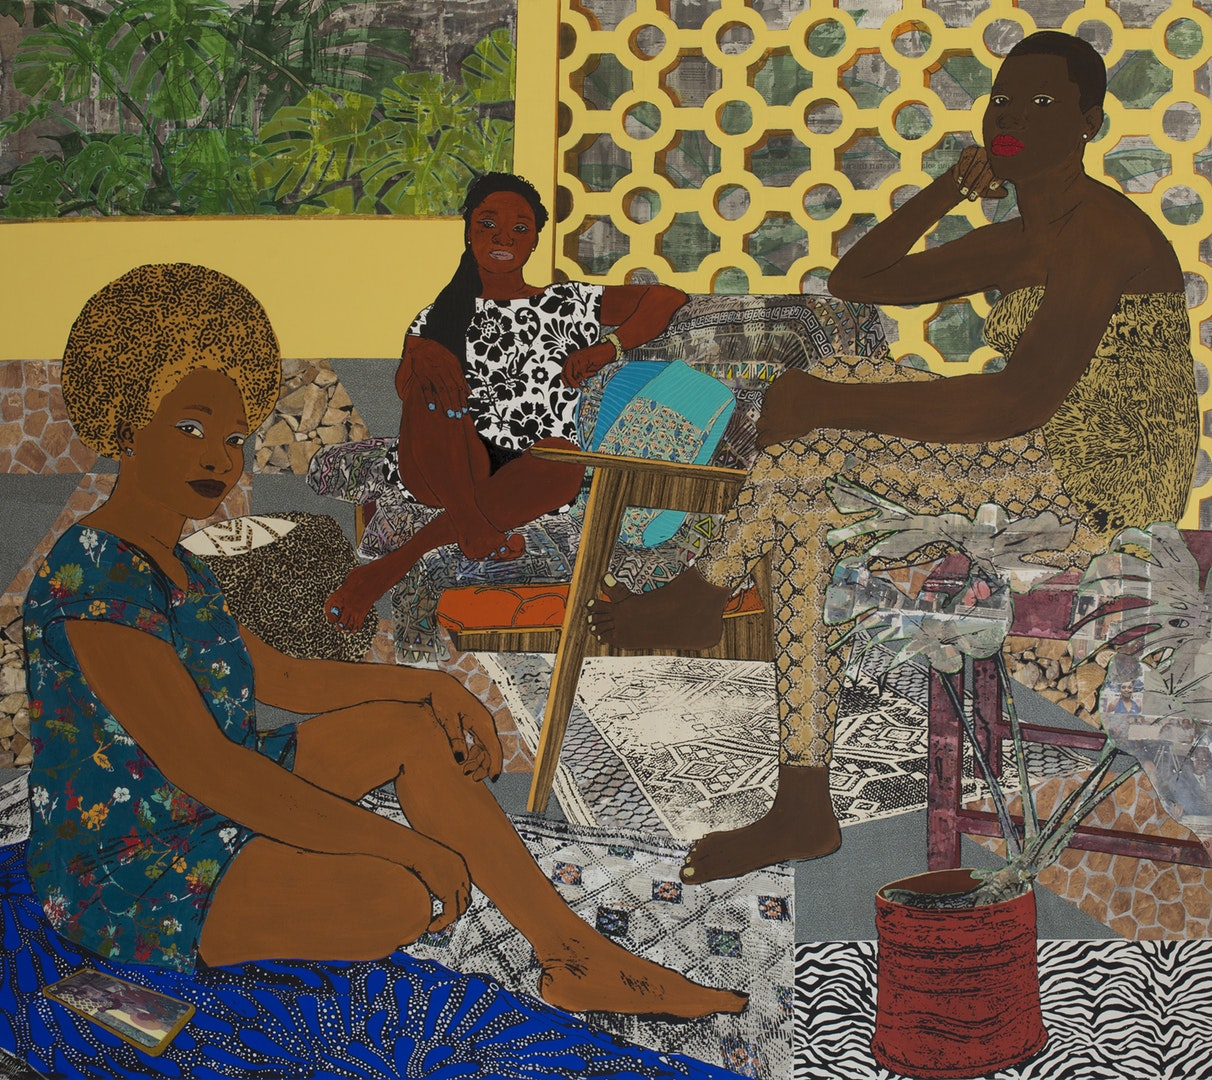 'In the Garden', Tjasa Rener, Acrylic, screen-print, transfer, colored pencil, charcoal, pastel, decorative paper on canvas, 180 x 200 cm